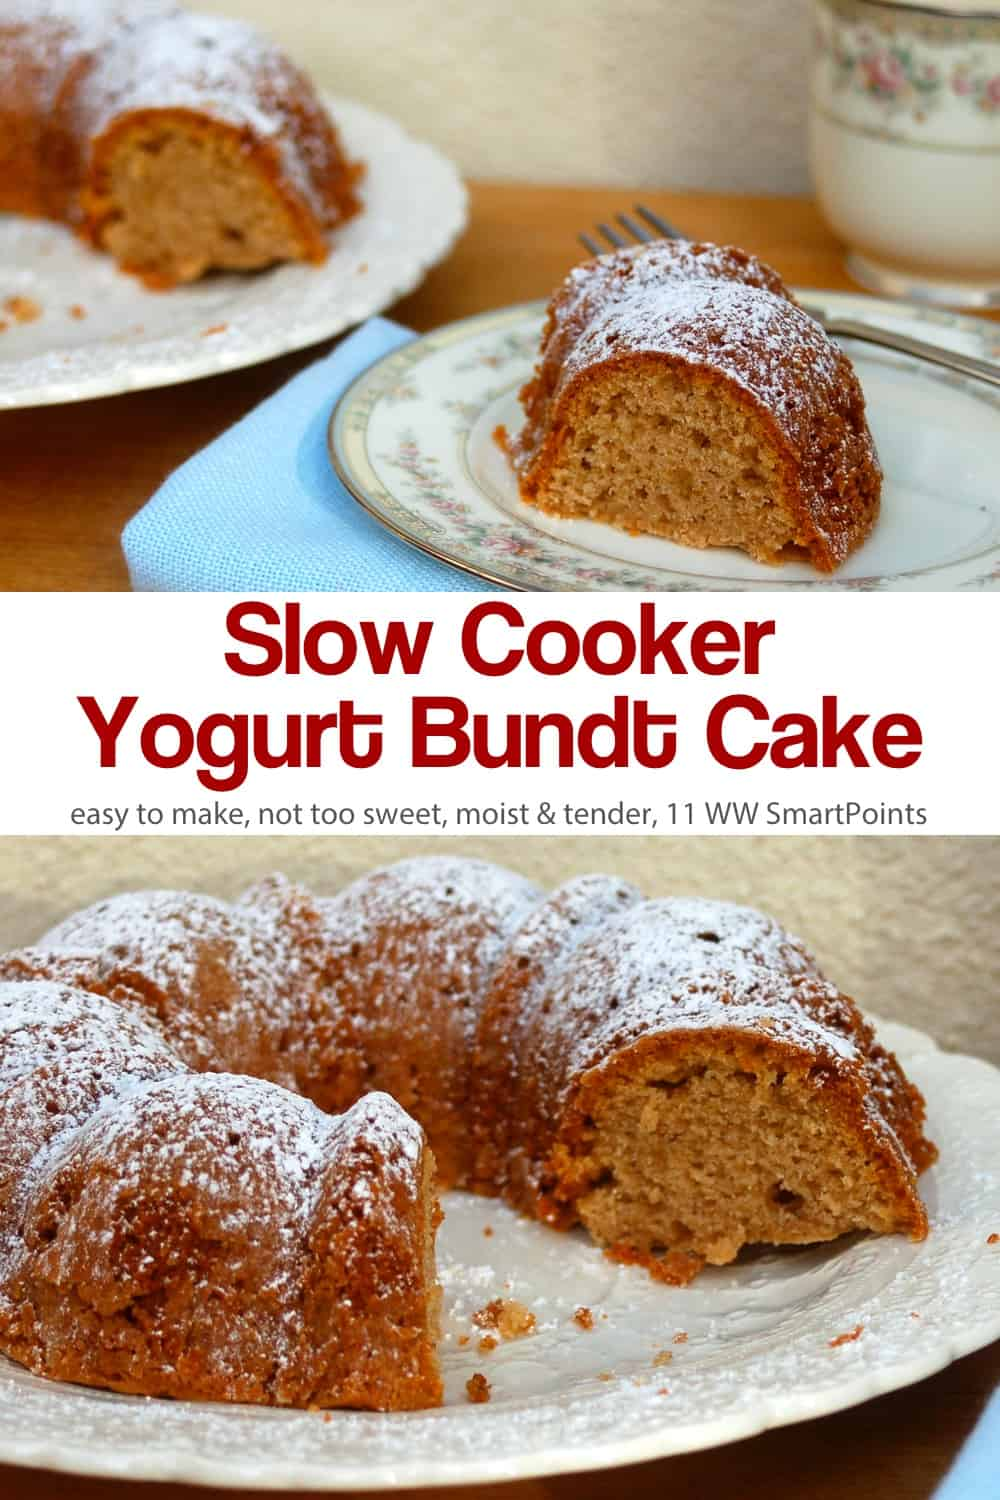 Simple not-too-sweet cakes, like this Slow Cooker Yogurt Bundt Cake, are a favorite. Moist and tender, slightly tangy from the yogurt, and gently spiced, I think you'll love it too. #slowcookeryogurtbundtcake #cake #slowcooker